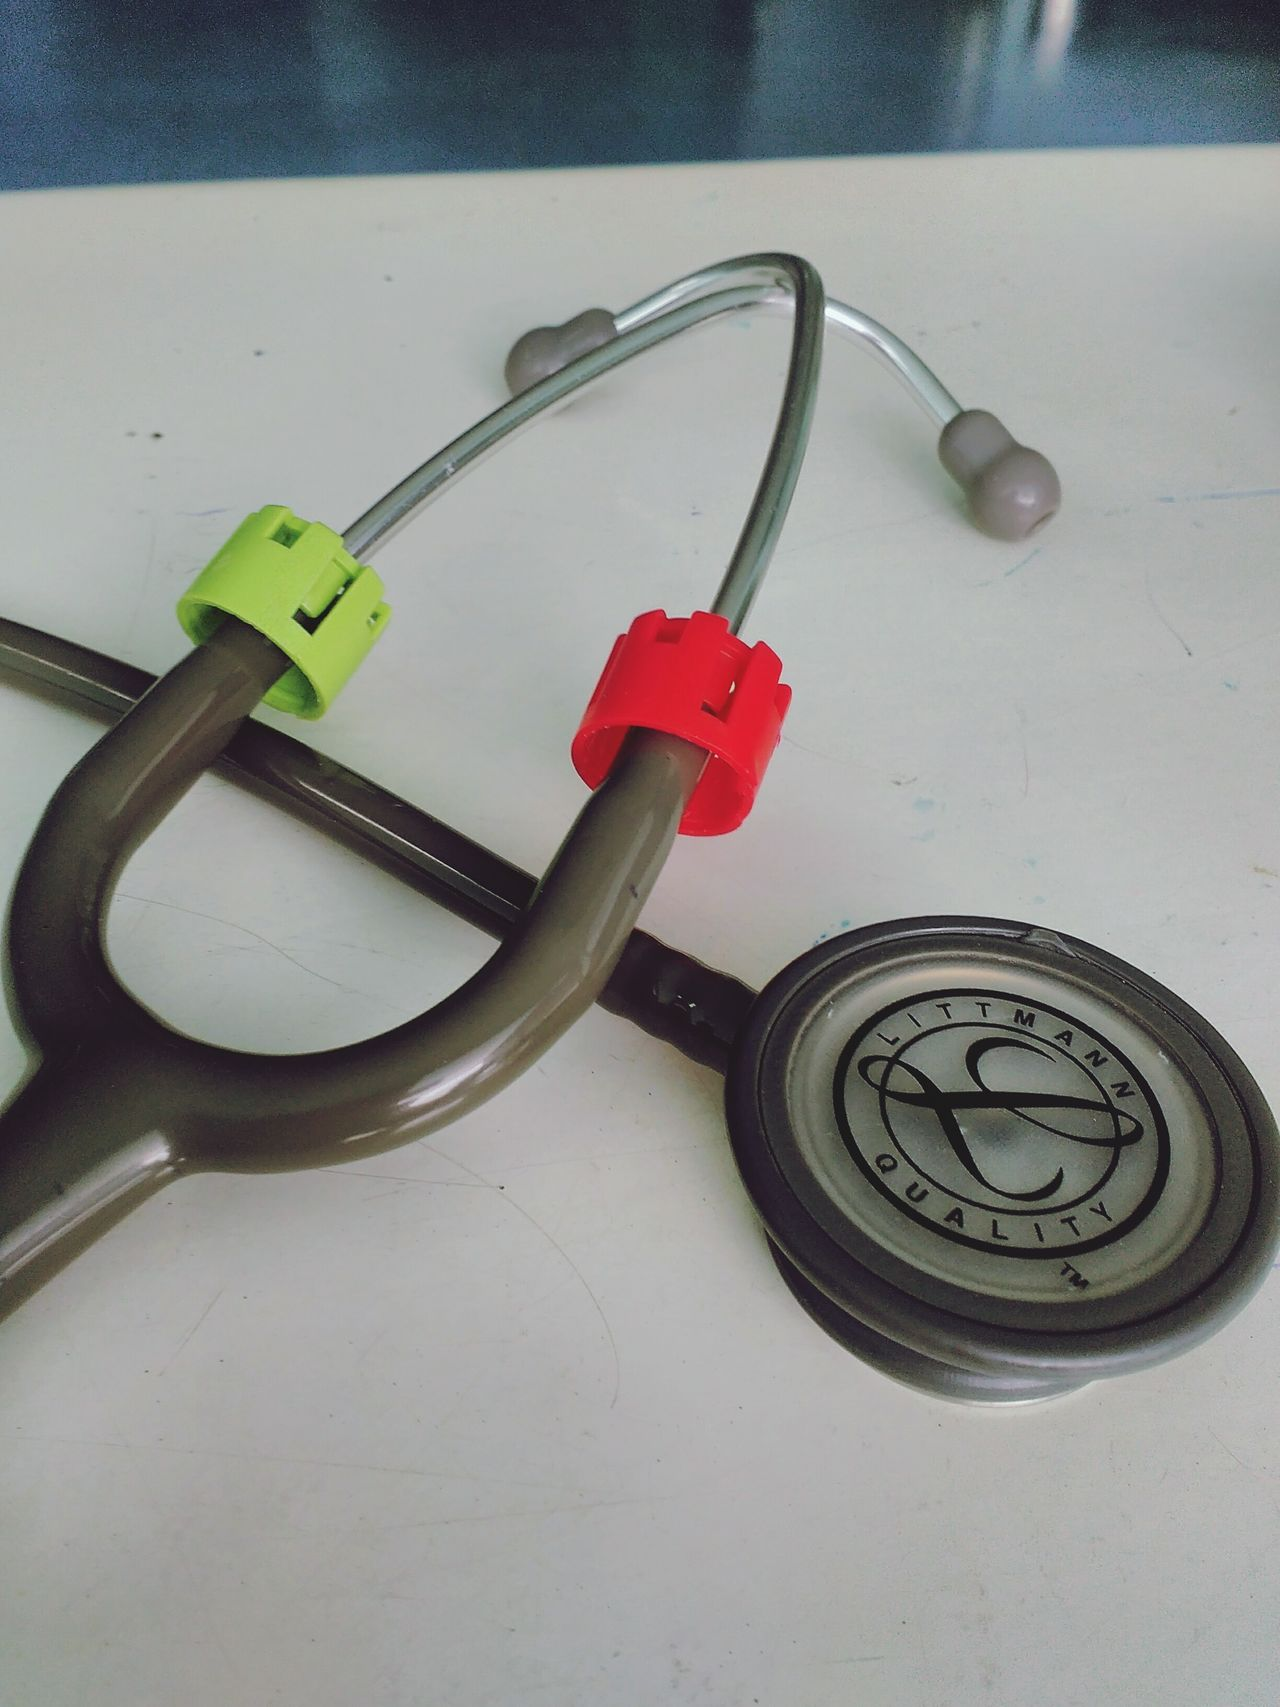 Call Of Duty Nurse_on_duty Nurseslife Stetoscope Littmann Lenovo Photography